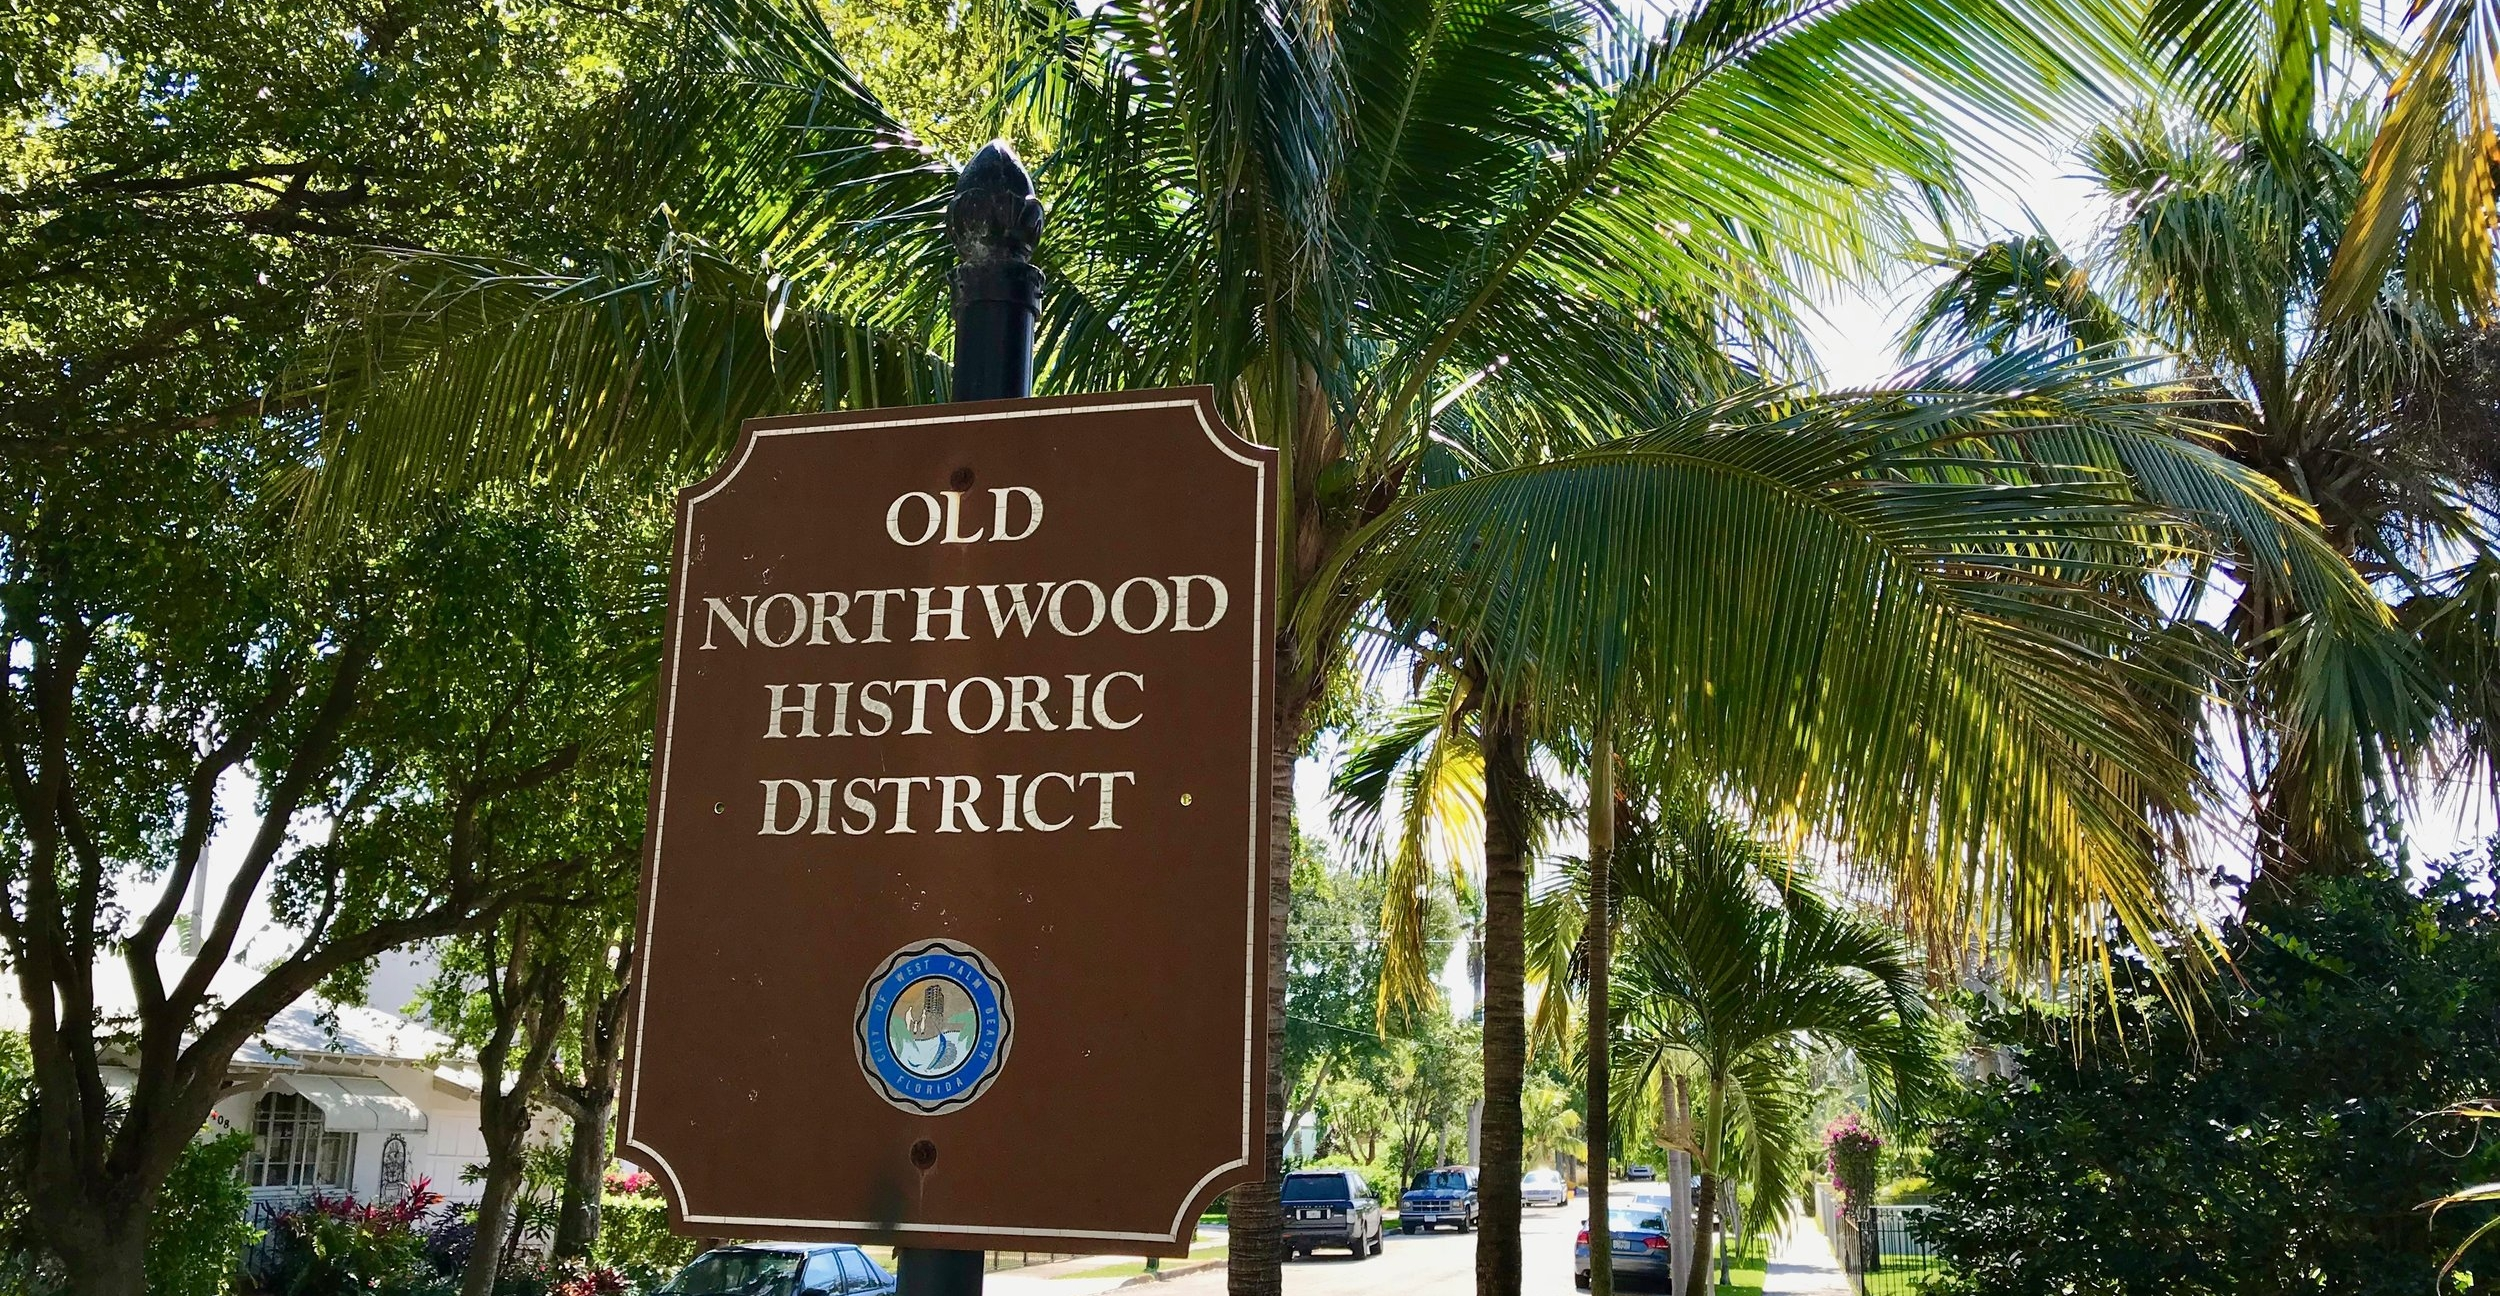 The Old Northwood Historic District is undergoing a huge revival. The combination of beautiful historic homes proximity to Northwood Village and Downtown West Palm Beach make it a great place to live. Art, culture, delicious restaurants are turning Northwood into the next place to be. The district is bounded by Broadway, North Dixie Highway and 26th and 35th Streets. It contains 320 historic buildings. If you love historic homes Old Northwood is a paradise. Check out the search tool below to see all the historic homes for sale in Old Northwood, West Palm Beach, FL.